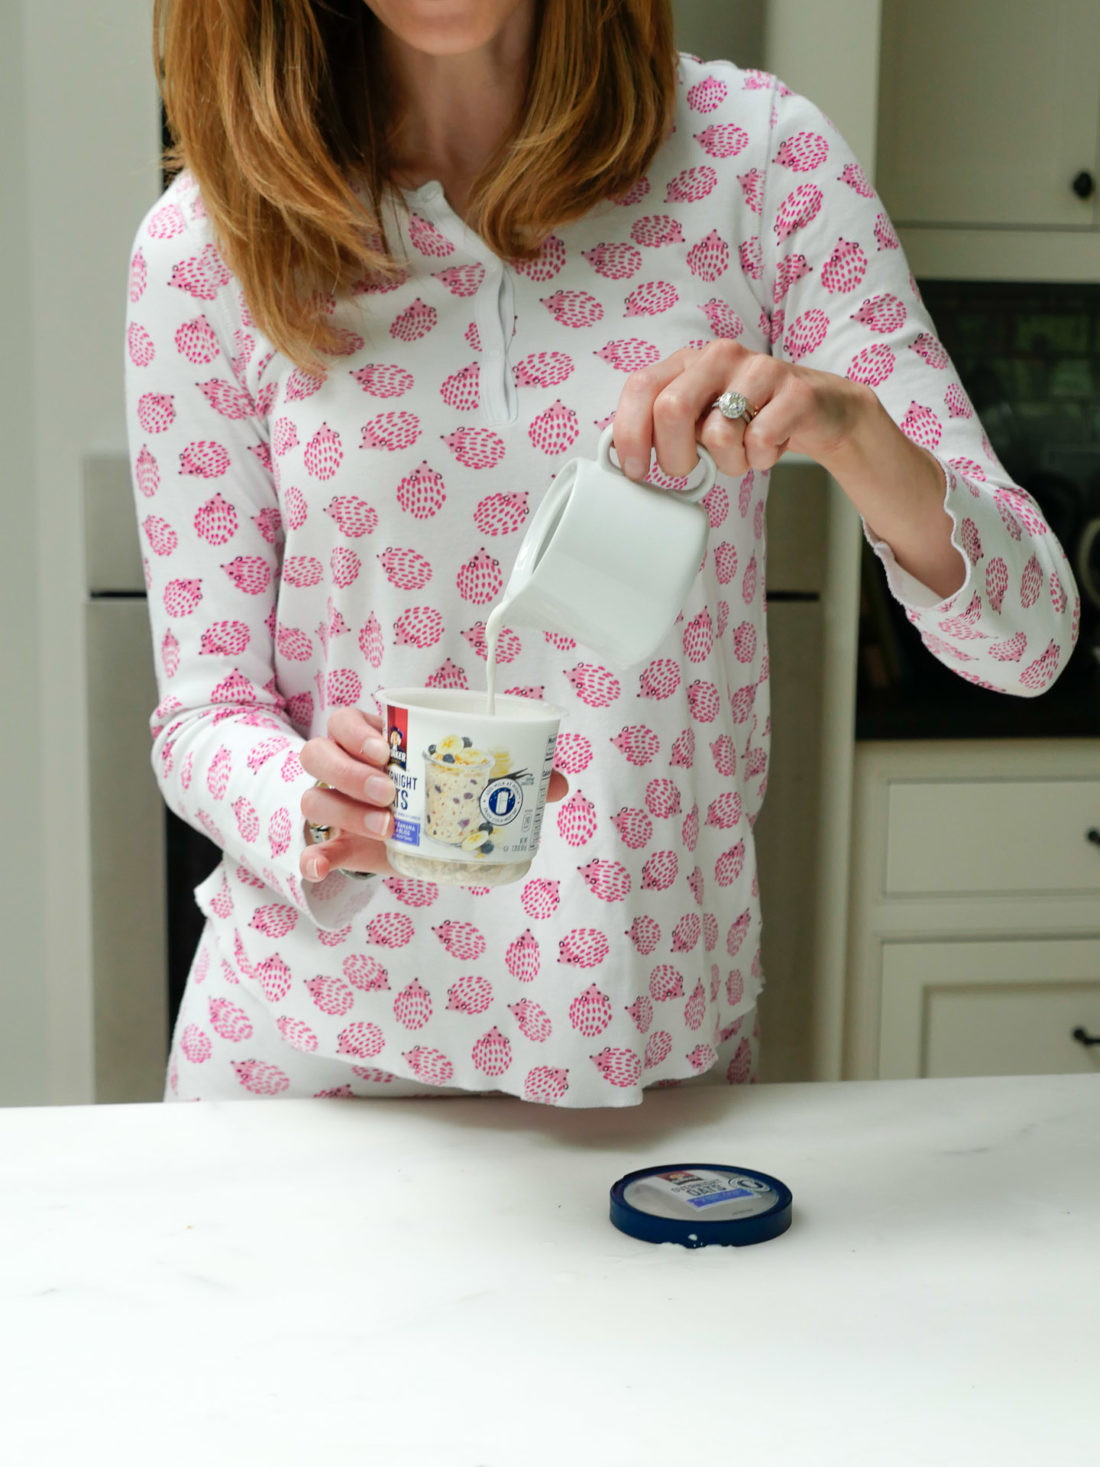 Eva Amurri Martino prepares her Quaker Overnight Oats the night before